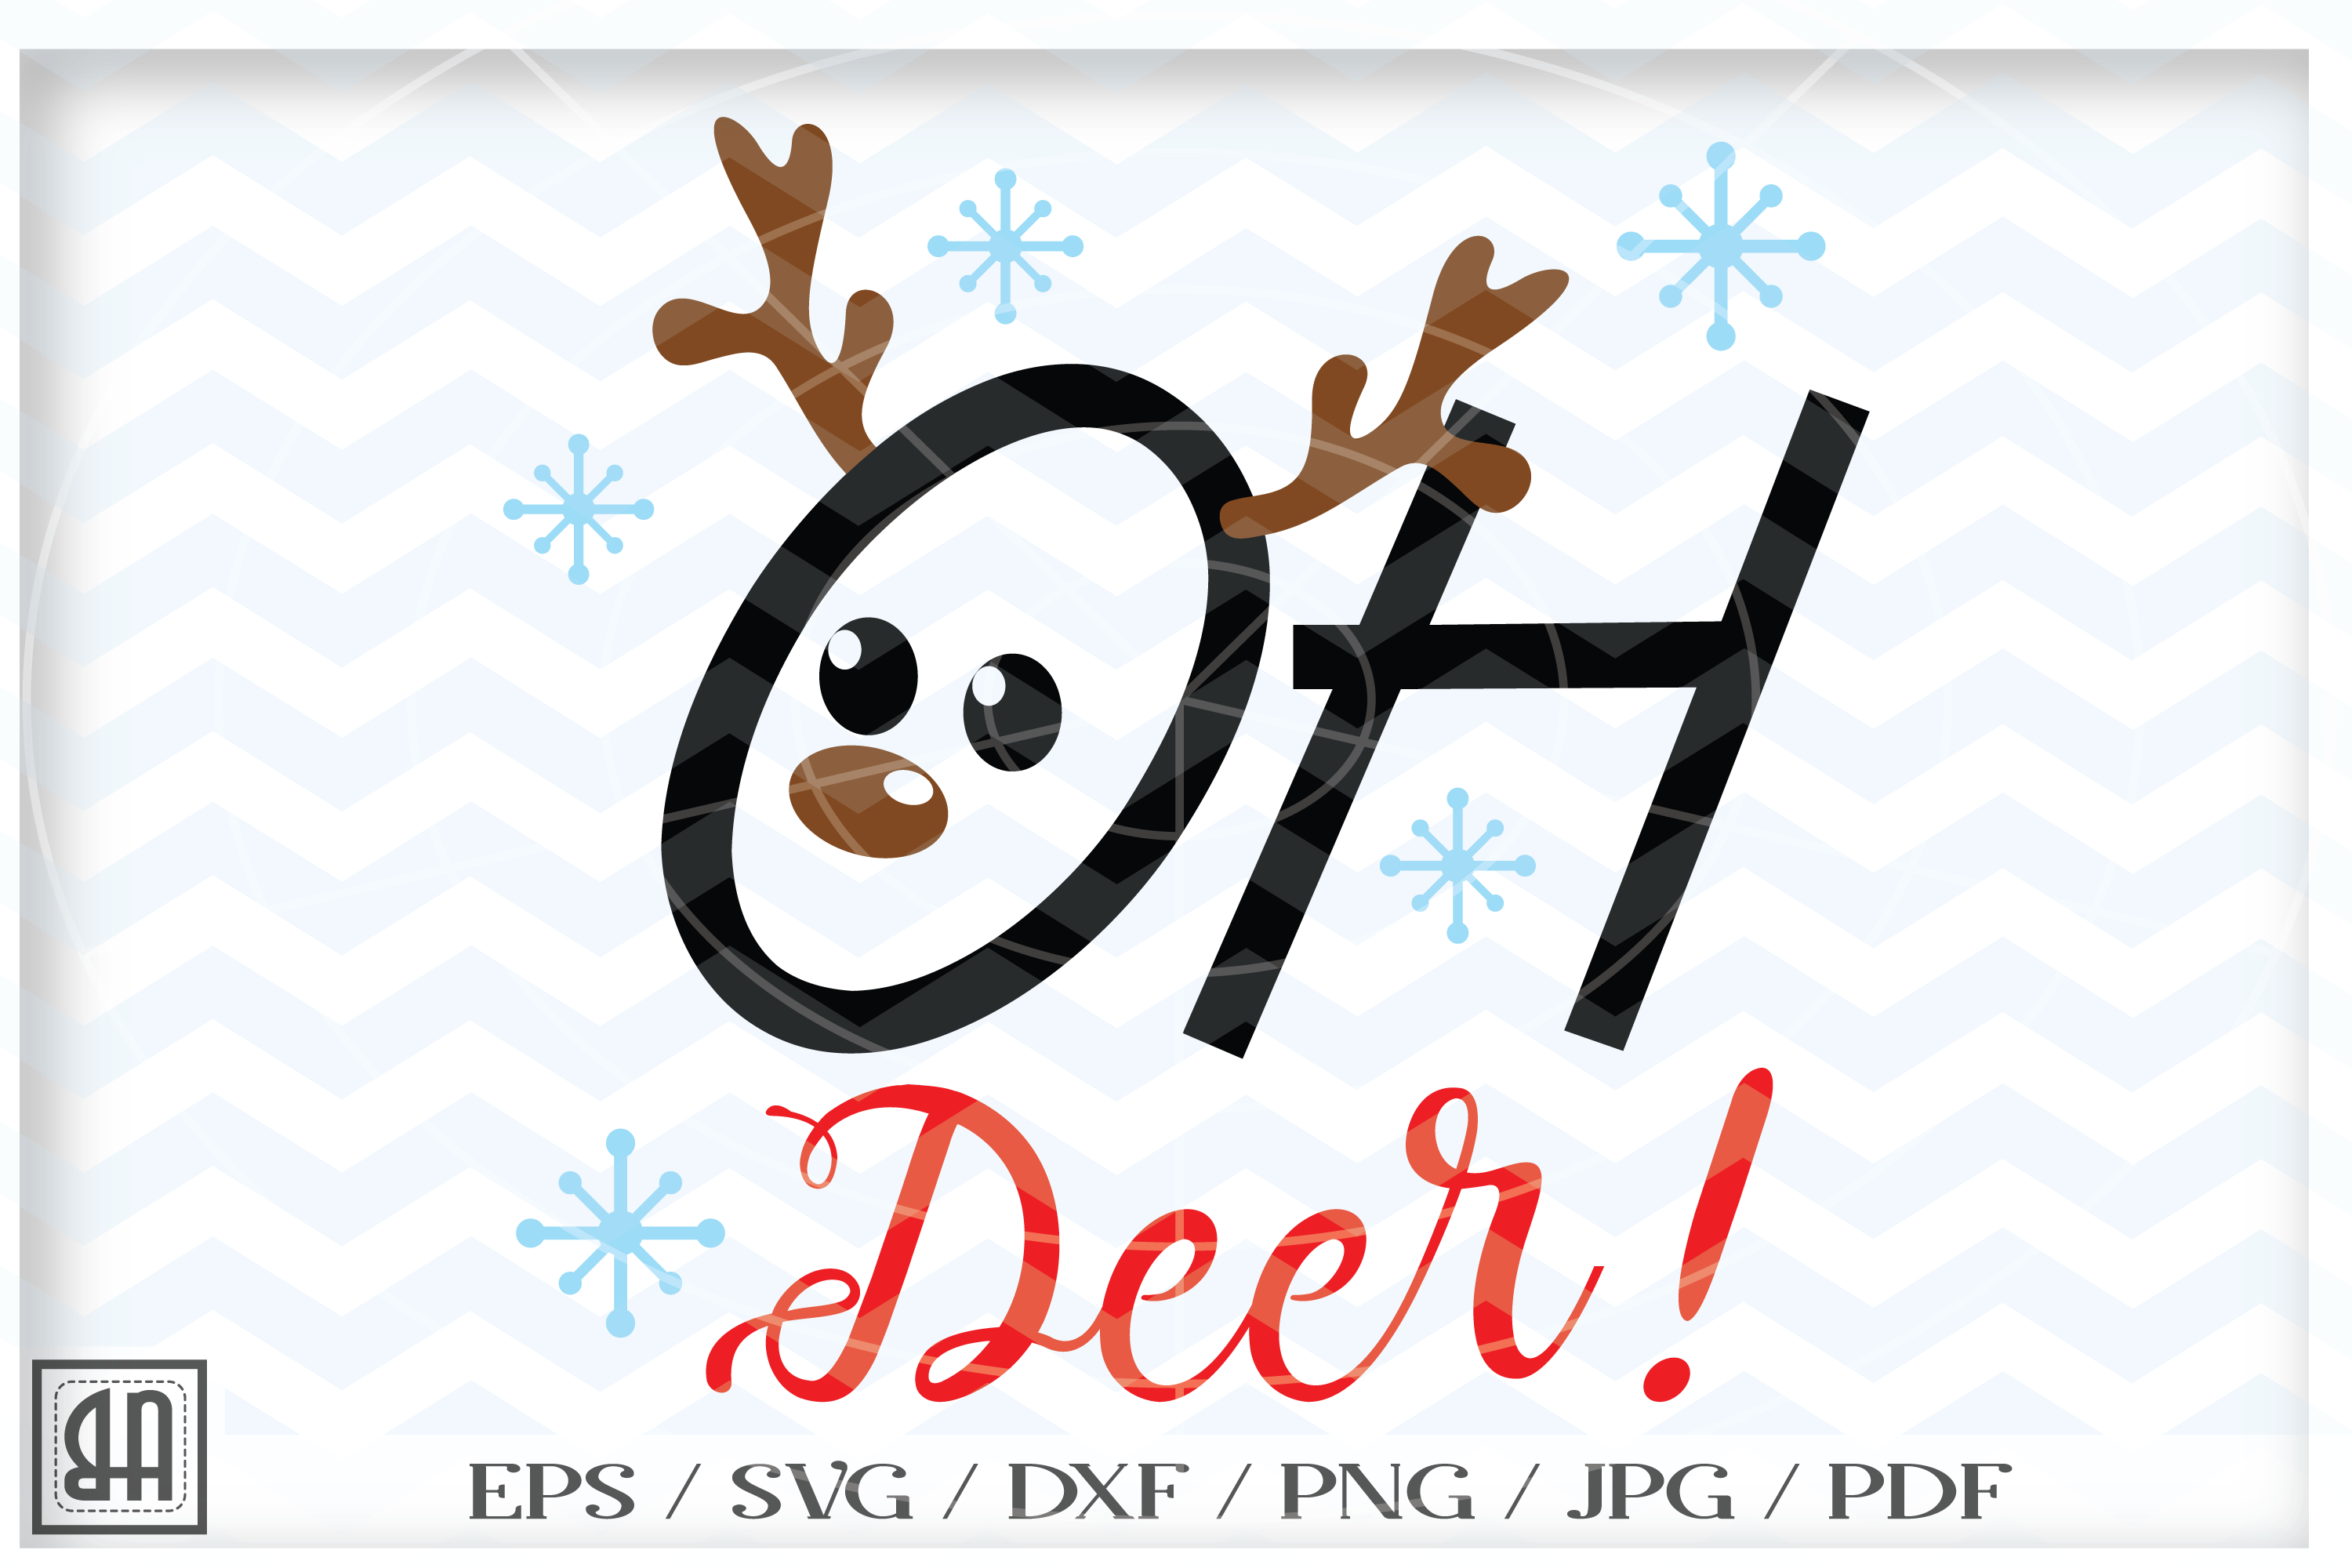 Christmas Deer Svg Oh Deer Xmass Svg Reindeer Cut Files 41915 Svgs Design Bundles